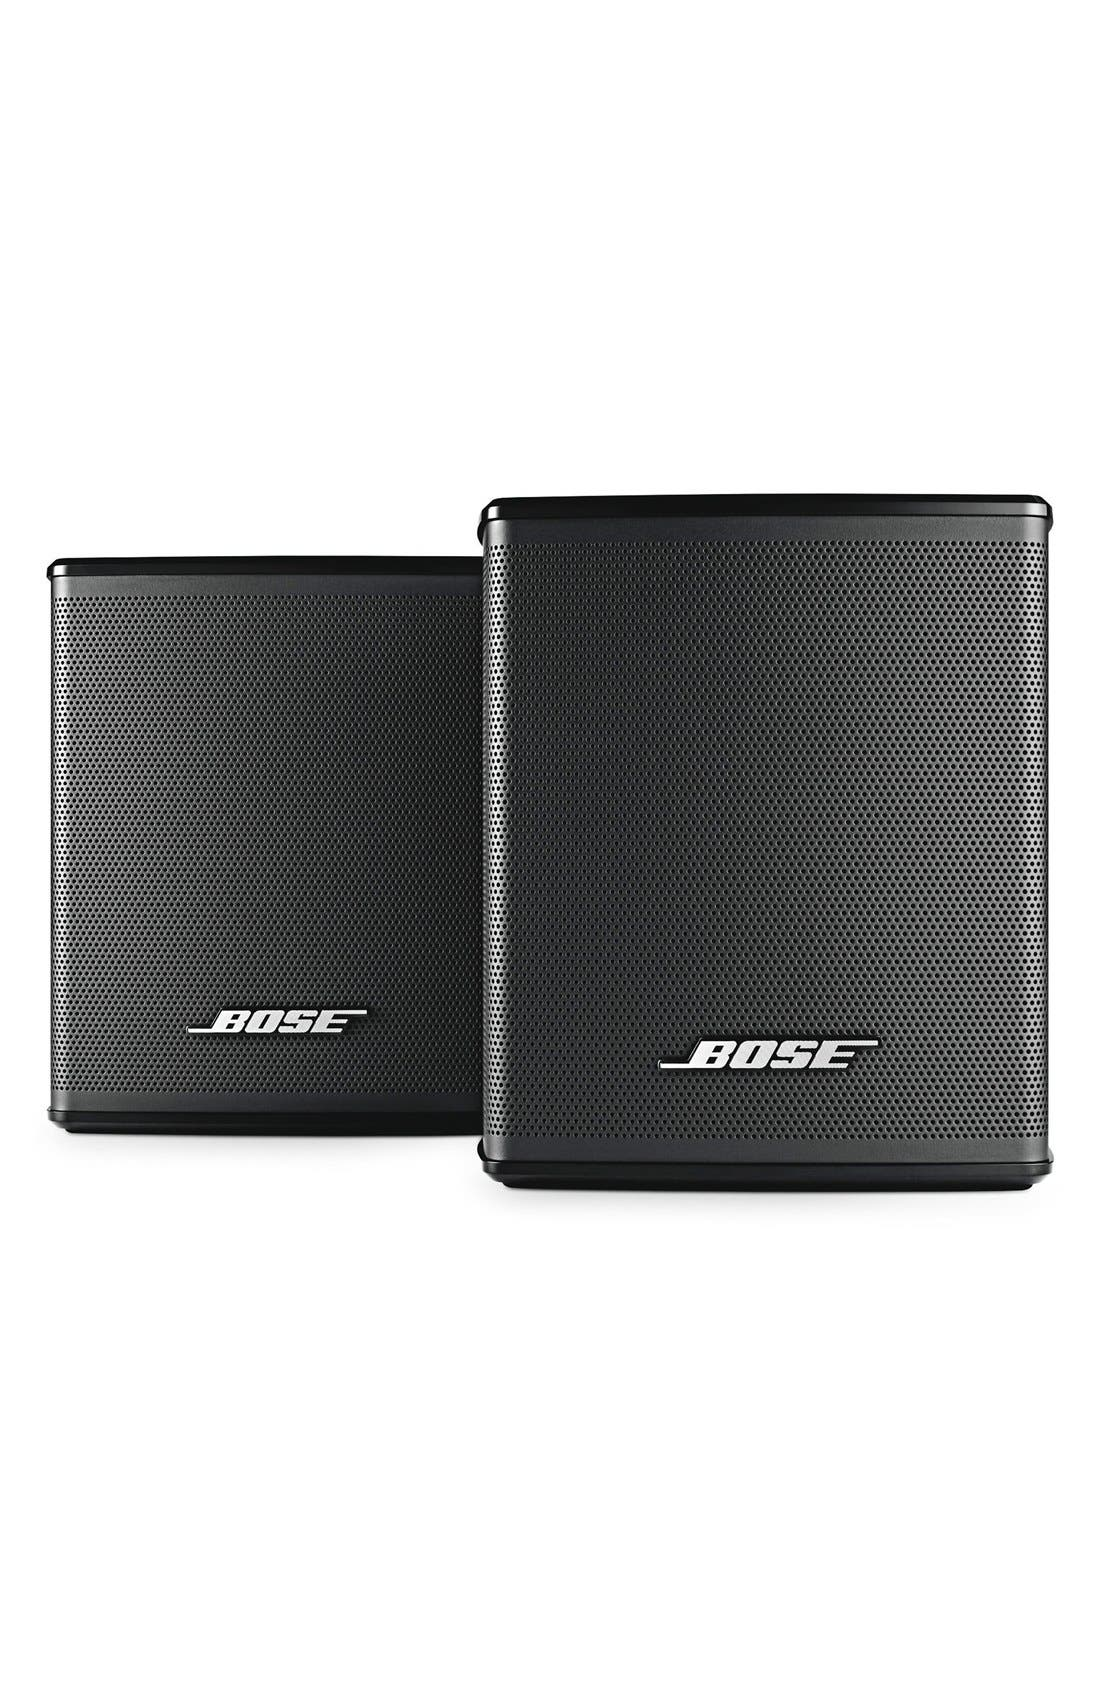 bose grey speakers. bose® soundtouch® 300 set of 2 surround sound speakers bose grey